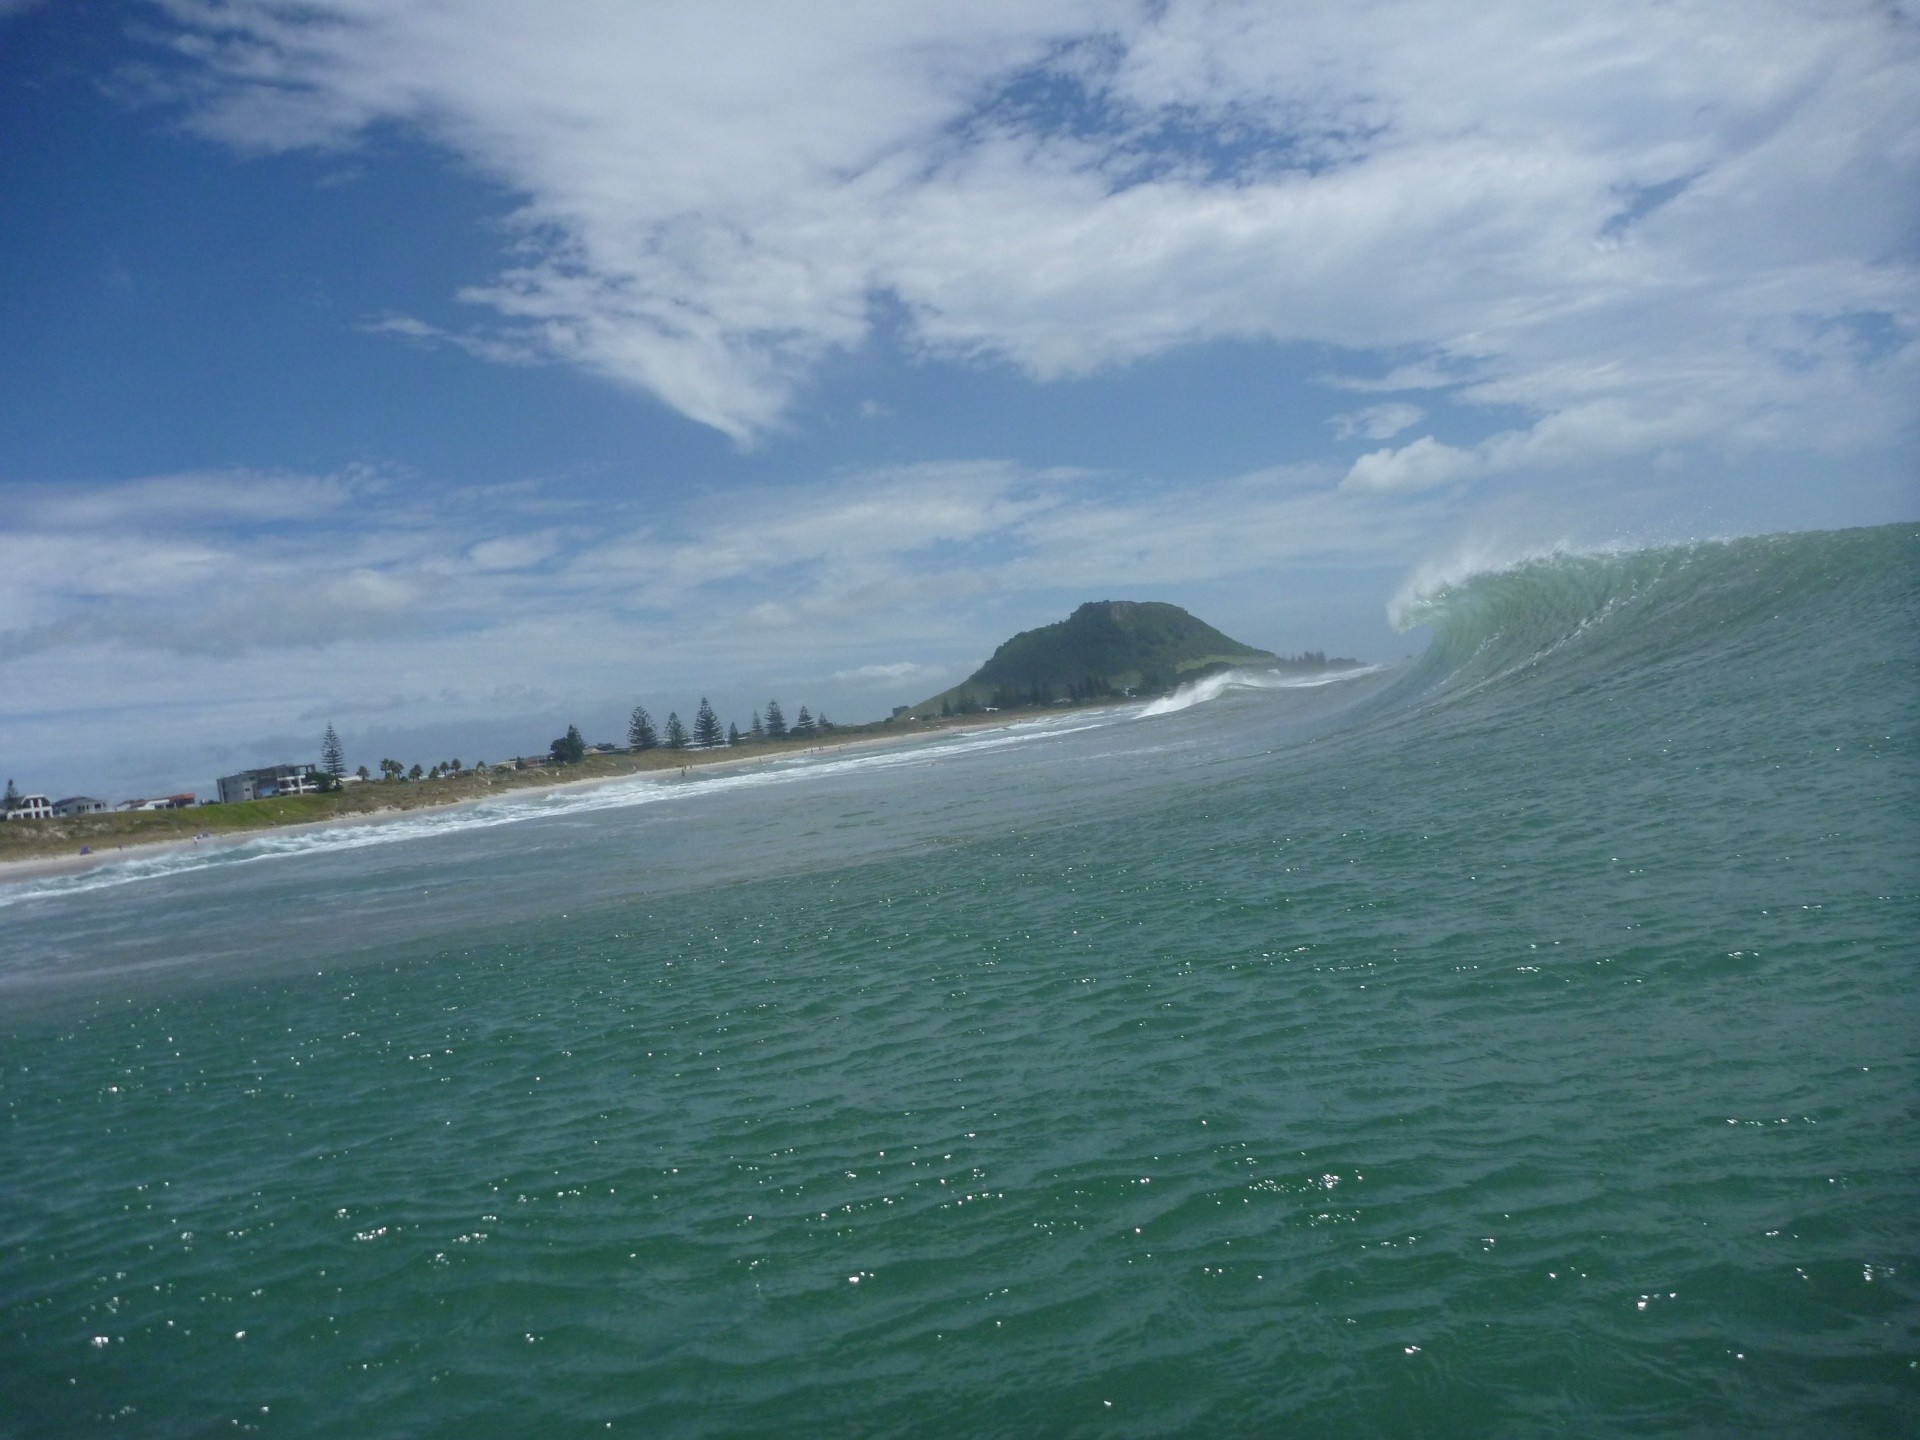 Seba's photo of Mount Maunganui